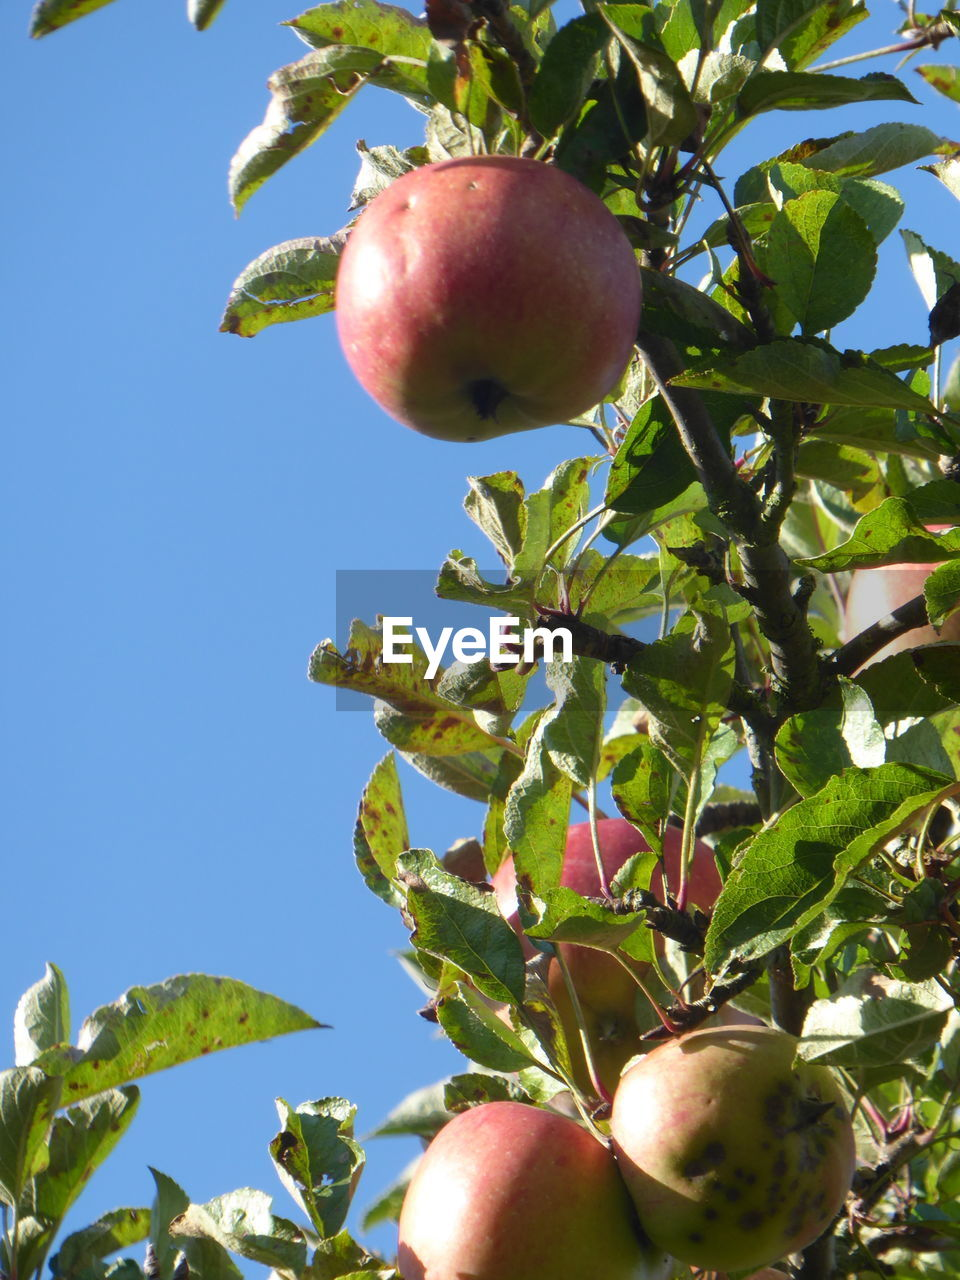 fruit, apple - fruit, food and drink, healthy eating, food, growth, tree, freshness, low angle view, day, apple, leaf, outdoors, ripe, green color, sunlight, nature, pomegranate, red, granny smith apple, peach, no people, clear sky, close-up, eaten